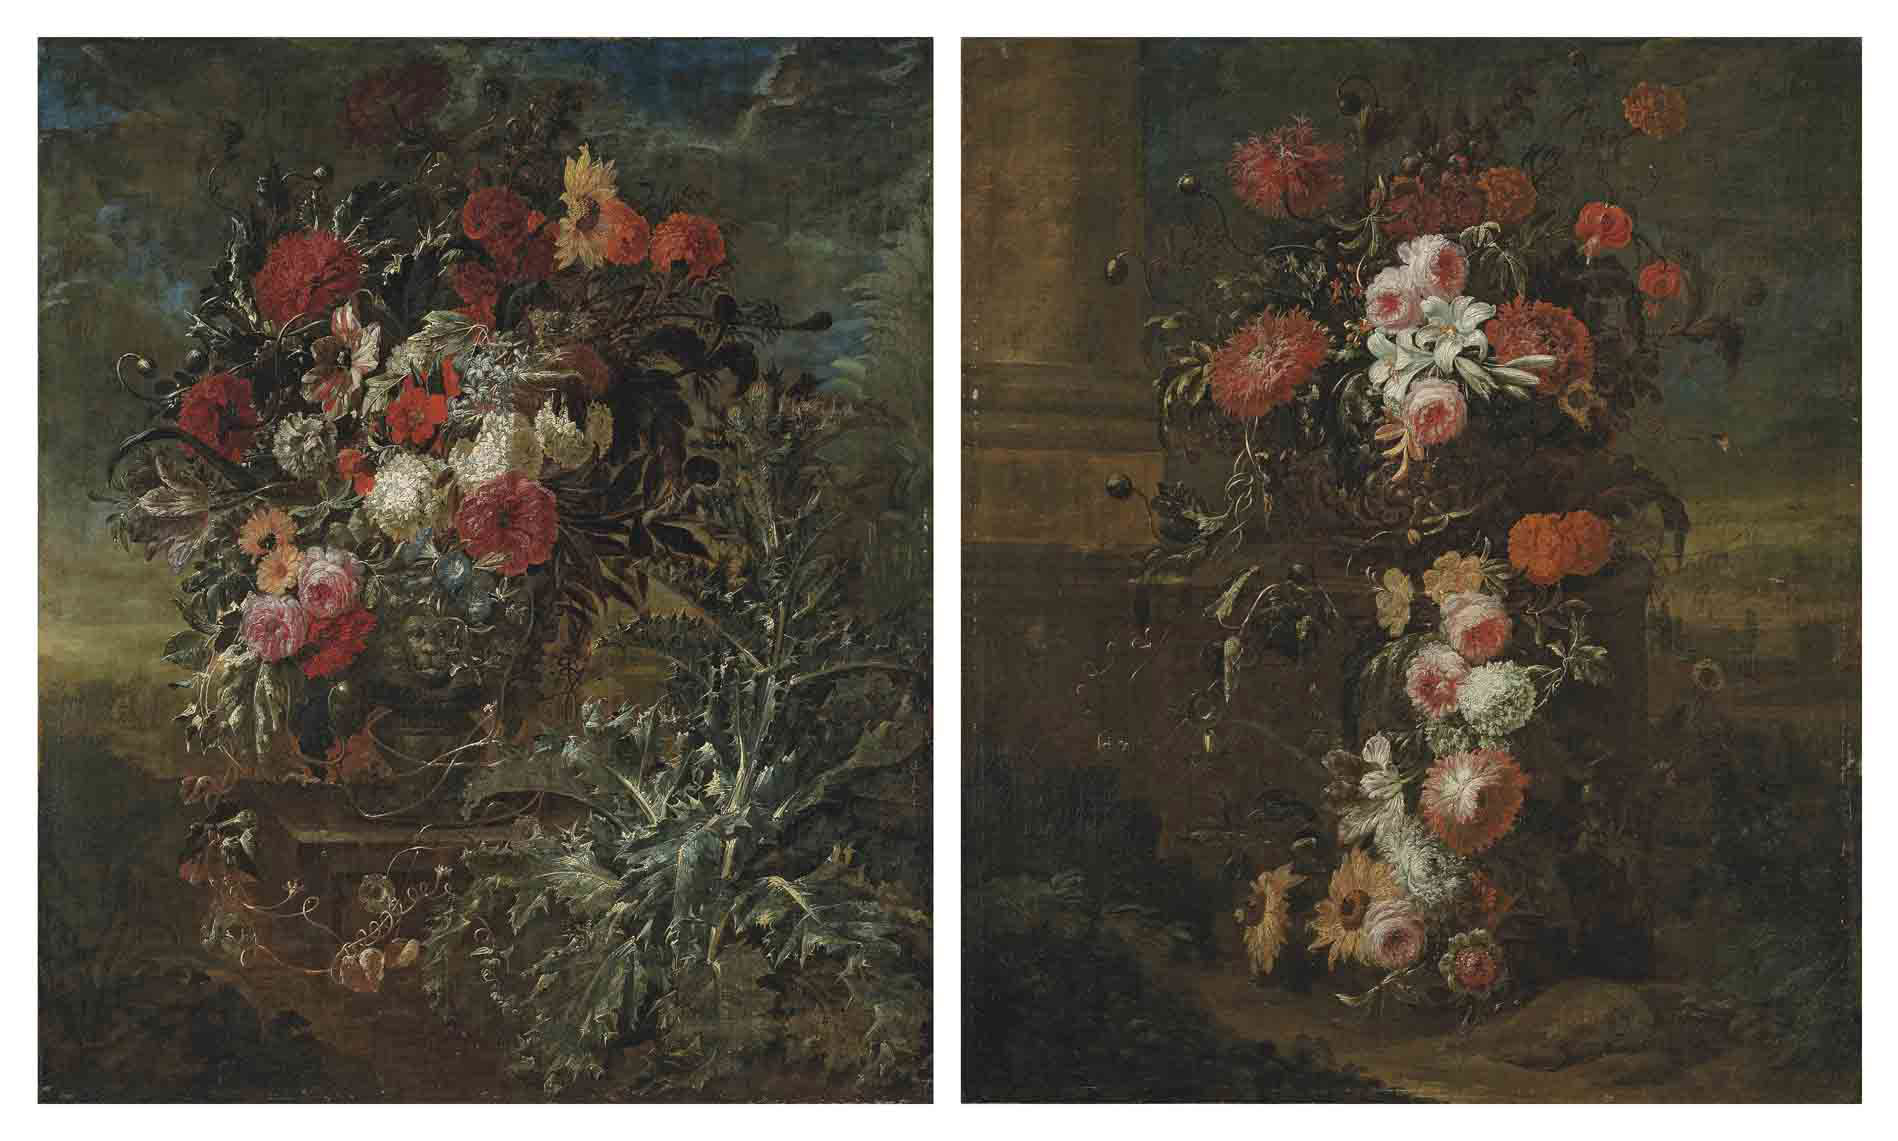 Roses, a sunflower, carnations, chrysanthemums, a tulip and other flowers in a sculpted stone urn, on a ledge, with a thistle, in a landscape; and Roses, lilies, carnations, sunflowers, a tulip and other flowers in a sculpted stone urn, on a ledge by a column, in a landscape